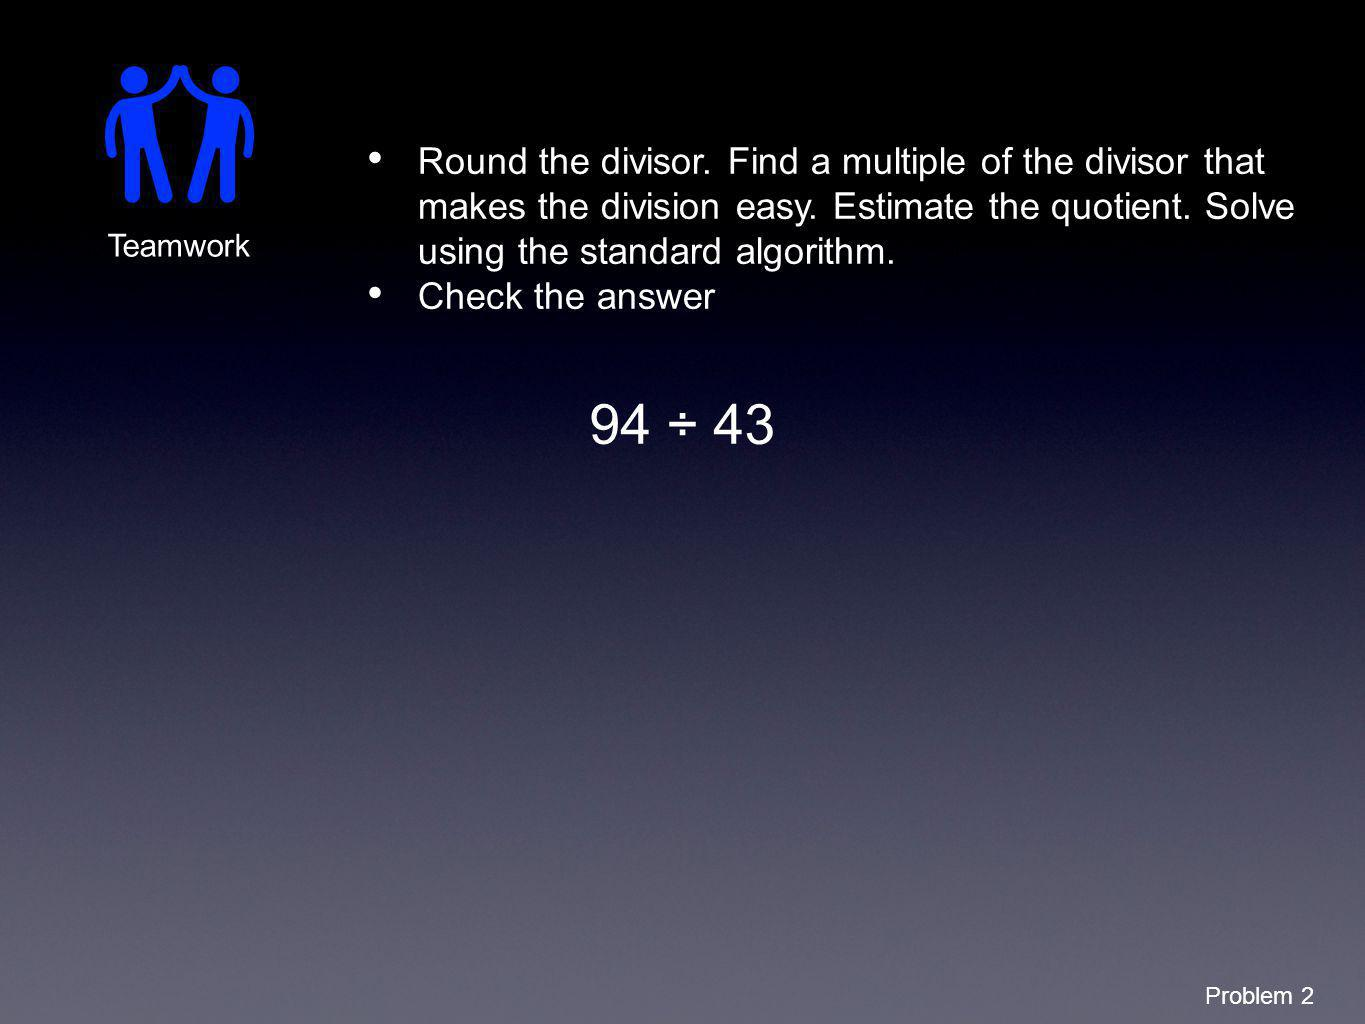 Round the divisor. Find a multiple of the divisor that makes the division easy. Estimate the quotient. Solve using the standard algorithm.